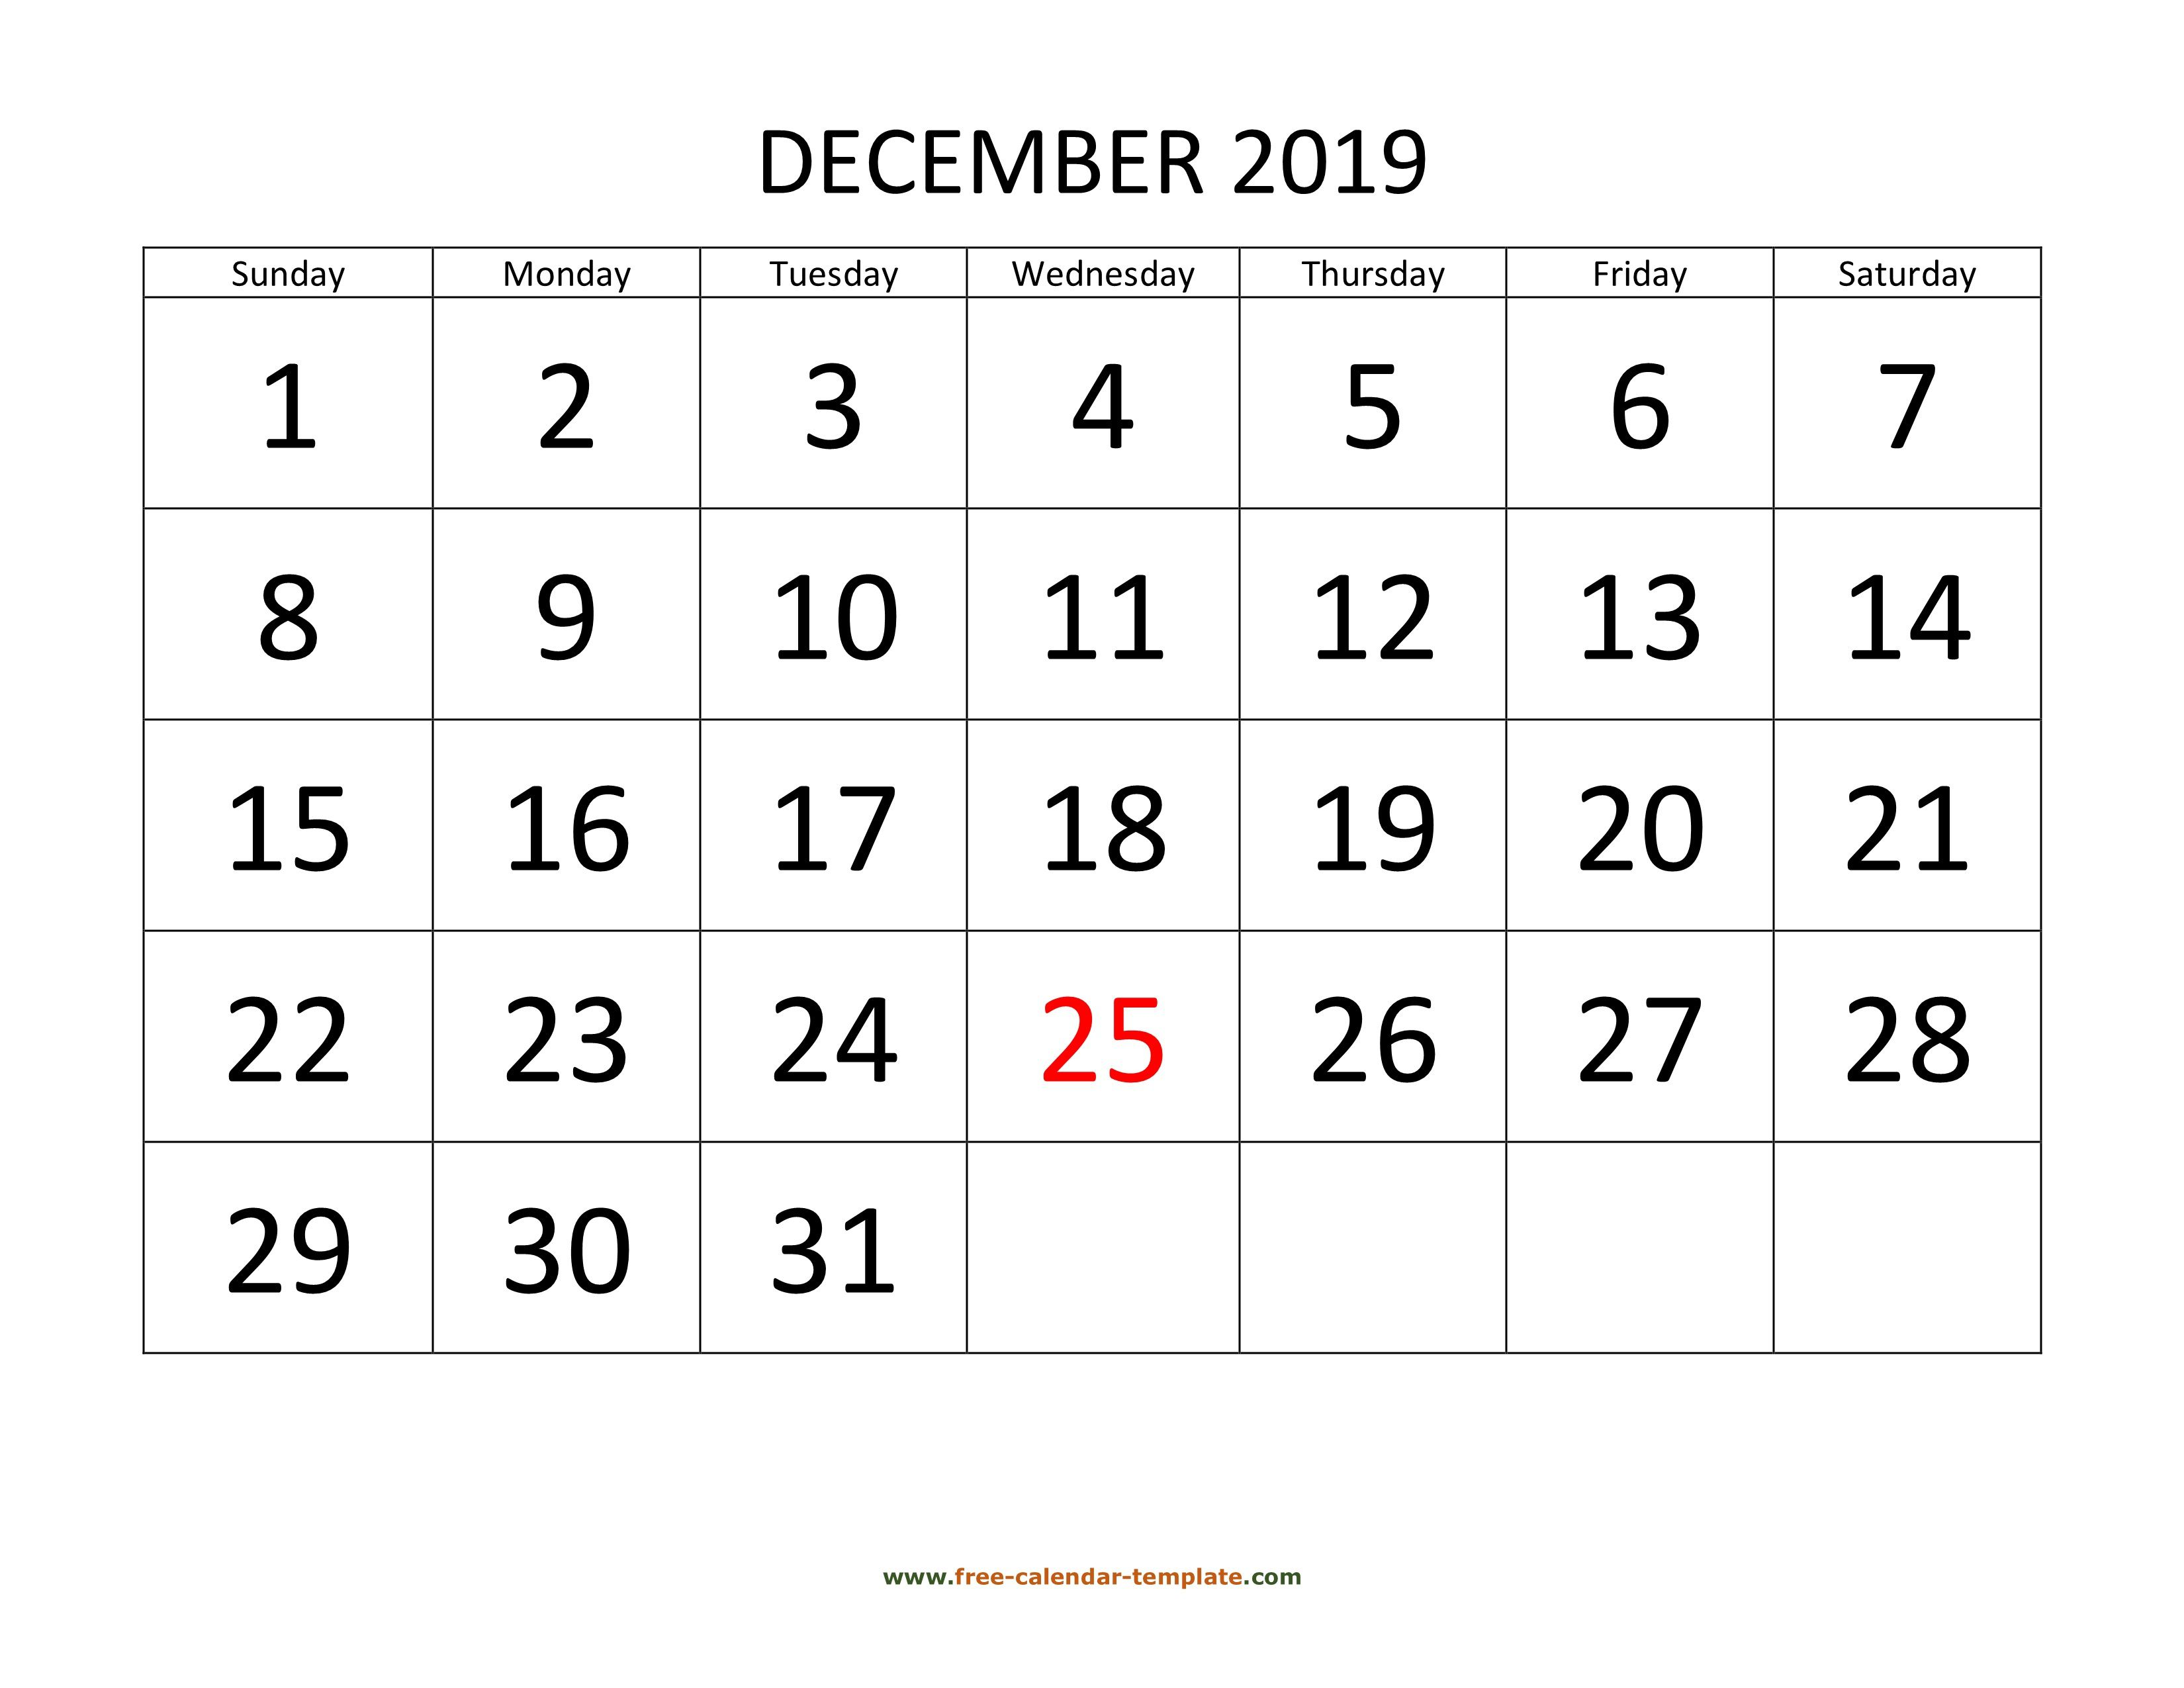 006 Impressive Calendar Template Free Download Highest Quality  2020 Powerpoint Table Design 2019 MalaysiaFull